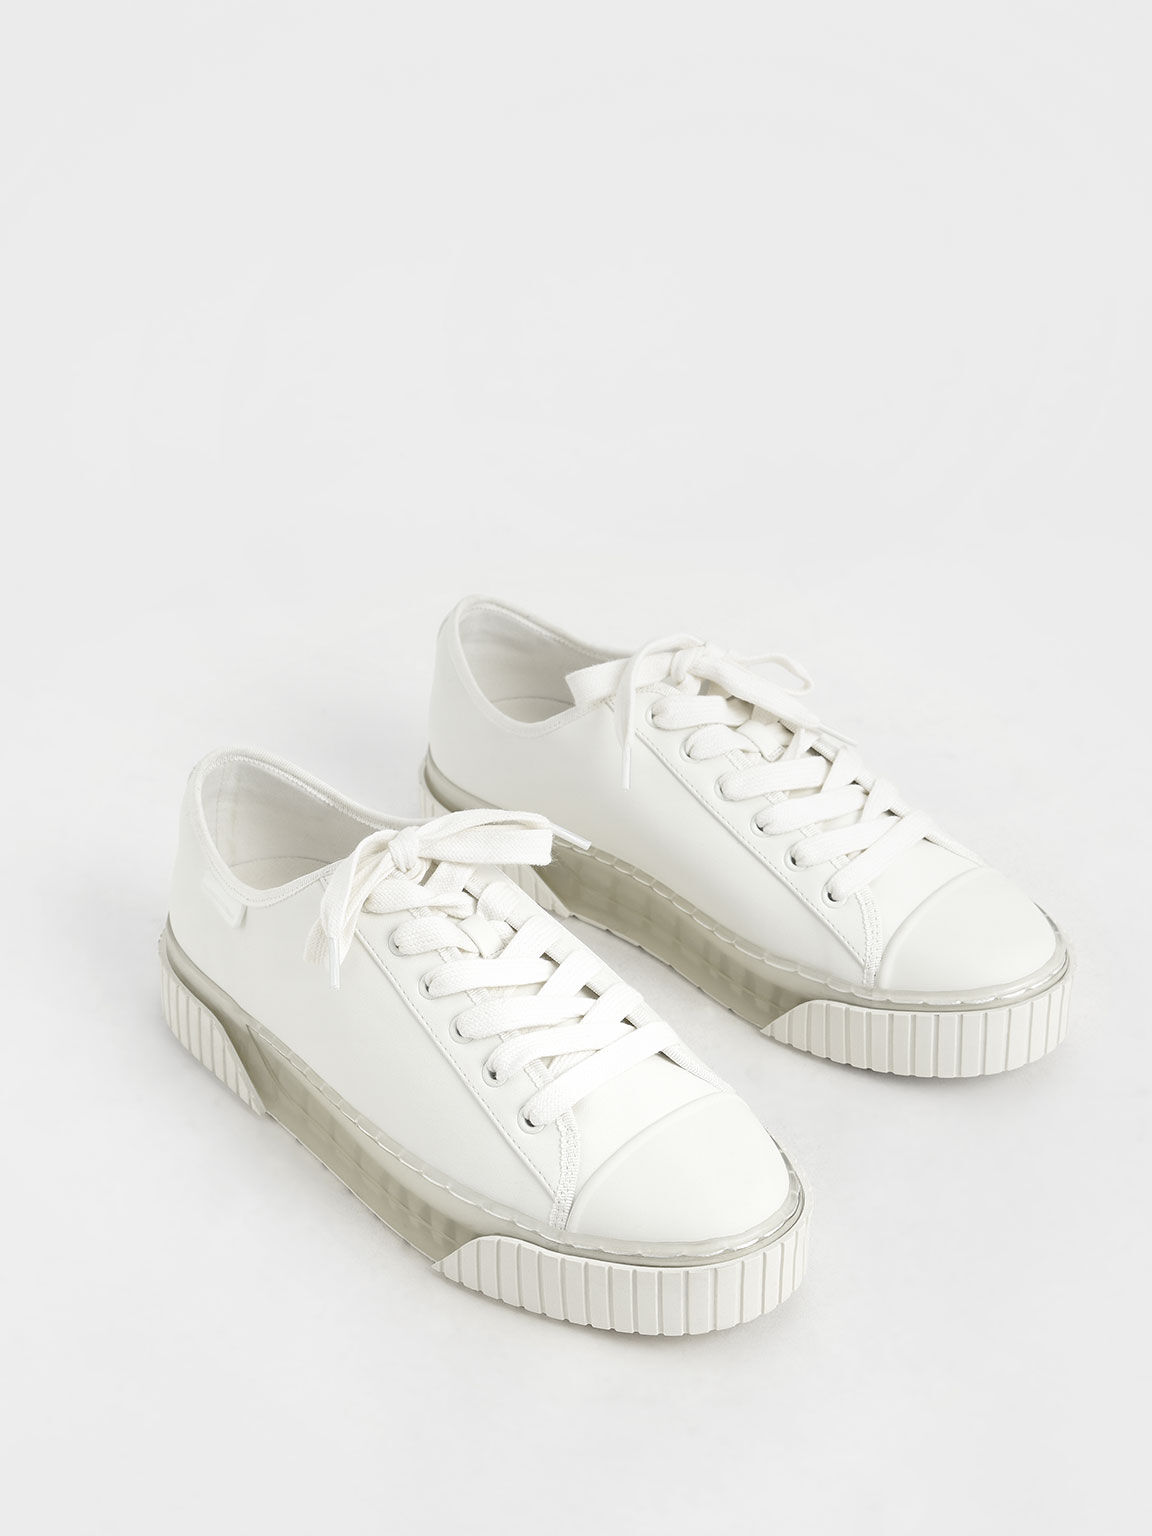 Purpose Collection 2021: Platform Sneakers, White, hi-res